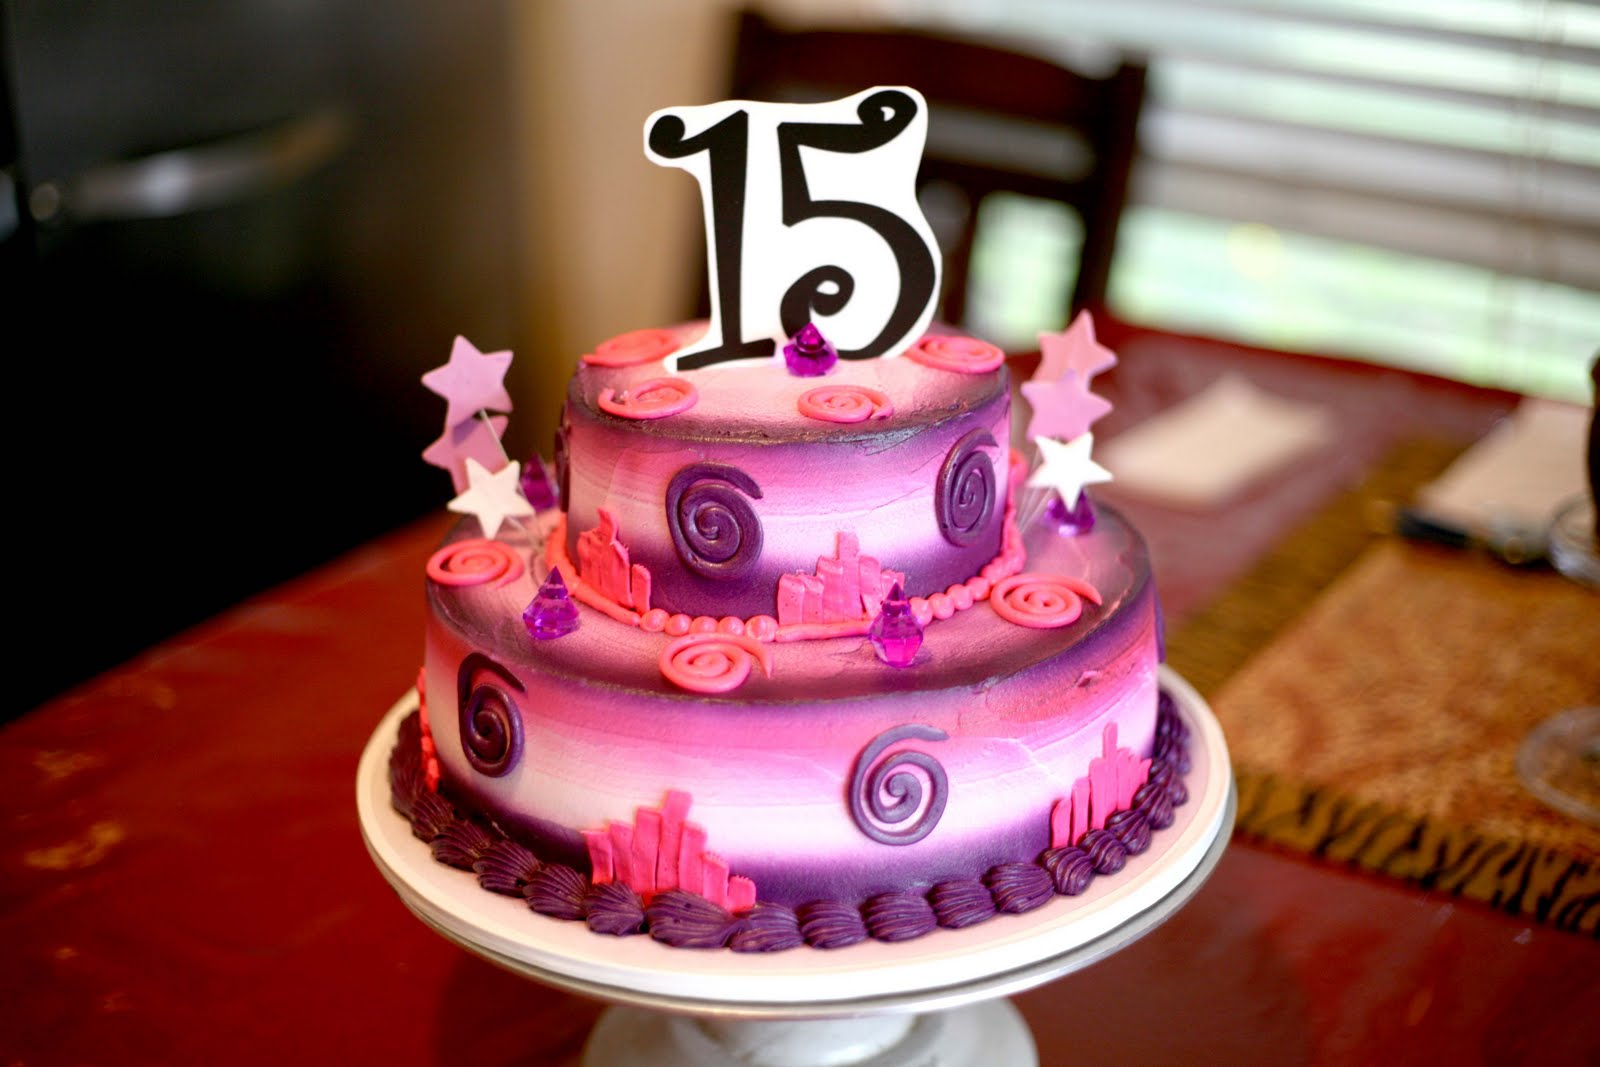 SWEET 15 CAKE 15TH BDAY